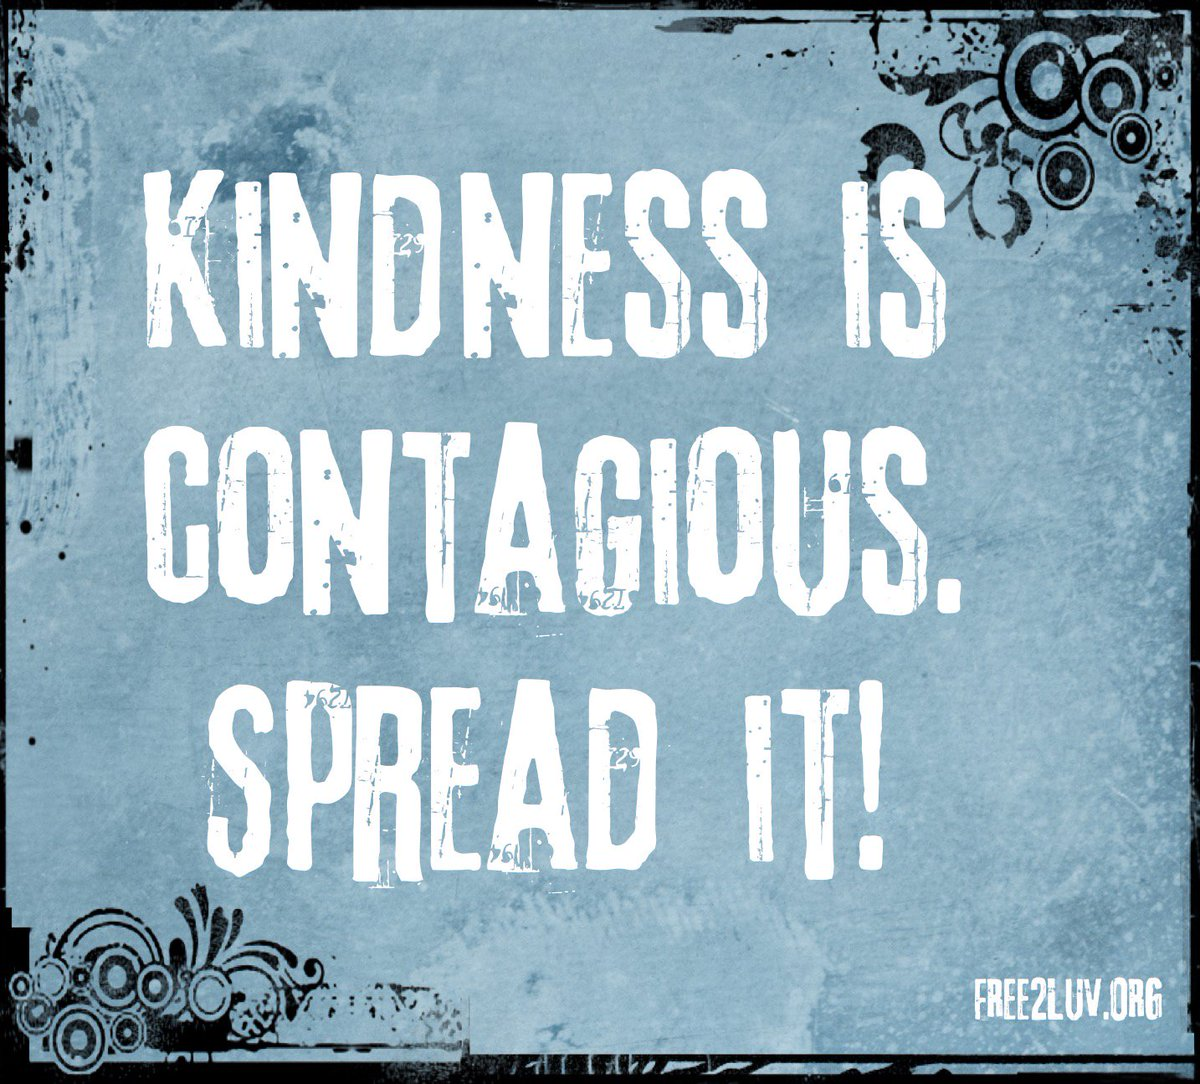 #Kindness is contageous. Spread it! #JoyTrain #Joy #BeKind #BeLove #Compassion  <br>http://pic.twitter.com/VlD1iXgWxZ RT @FREE_2_LUV